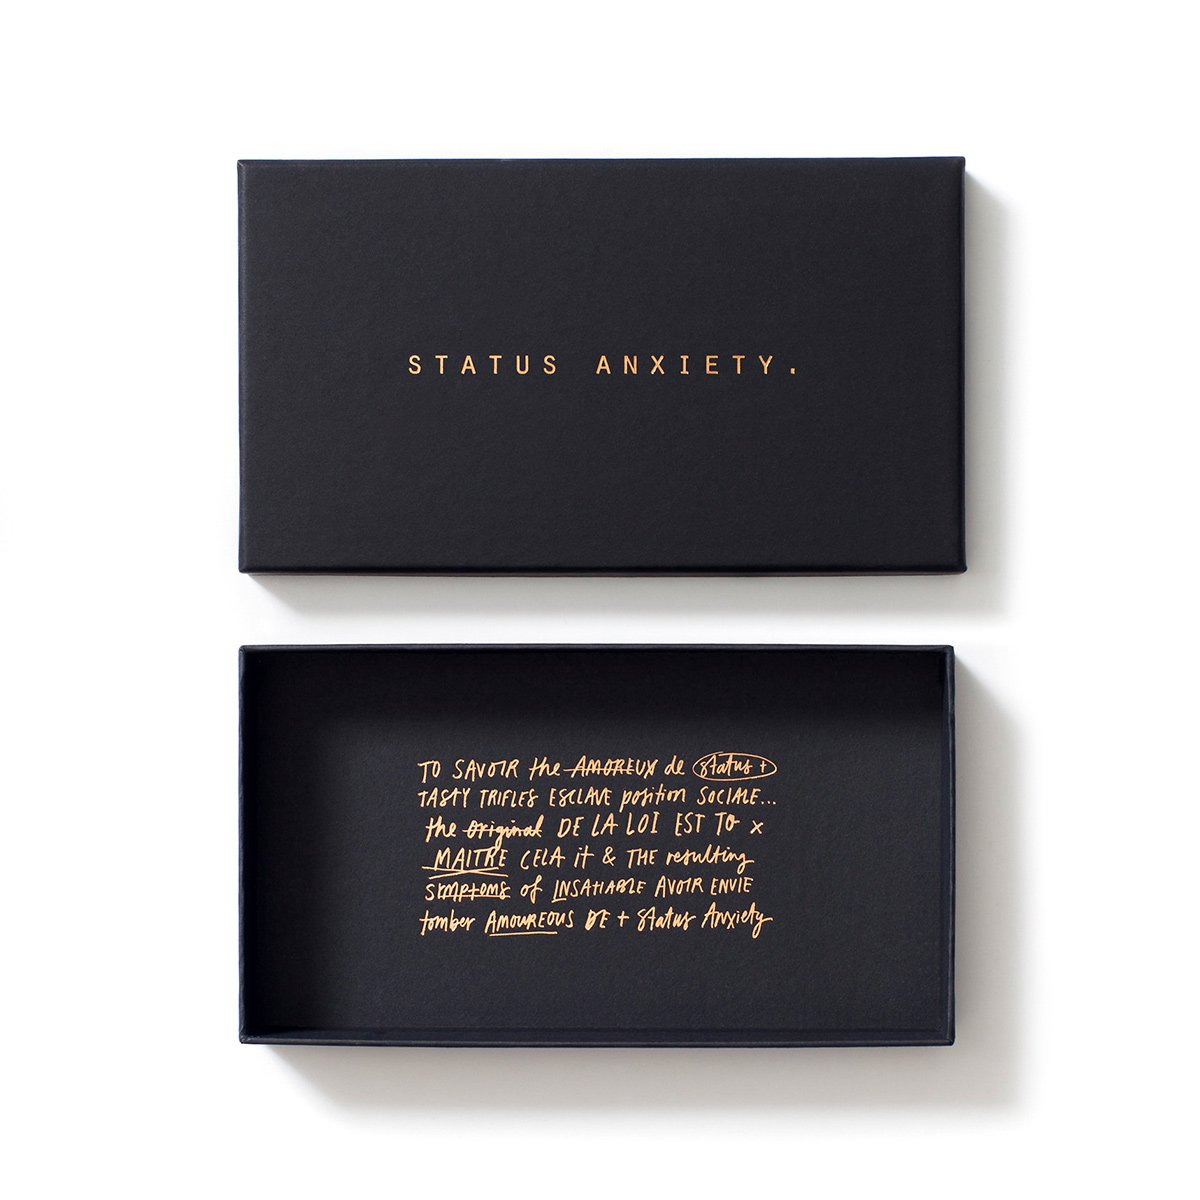 Status Anxiety | Triple Threat Wallet - Black